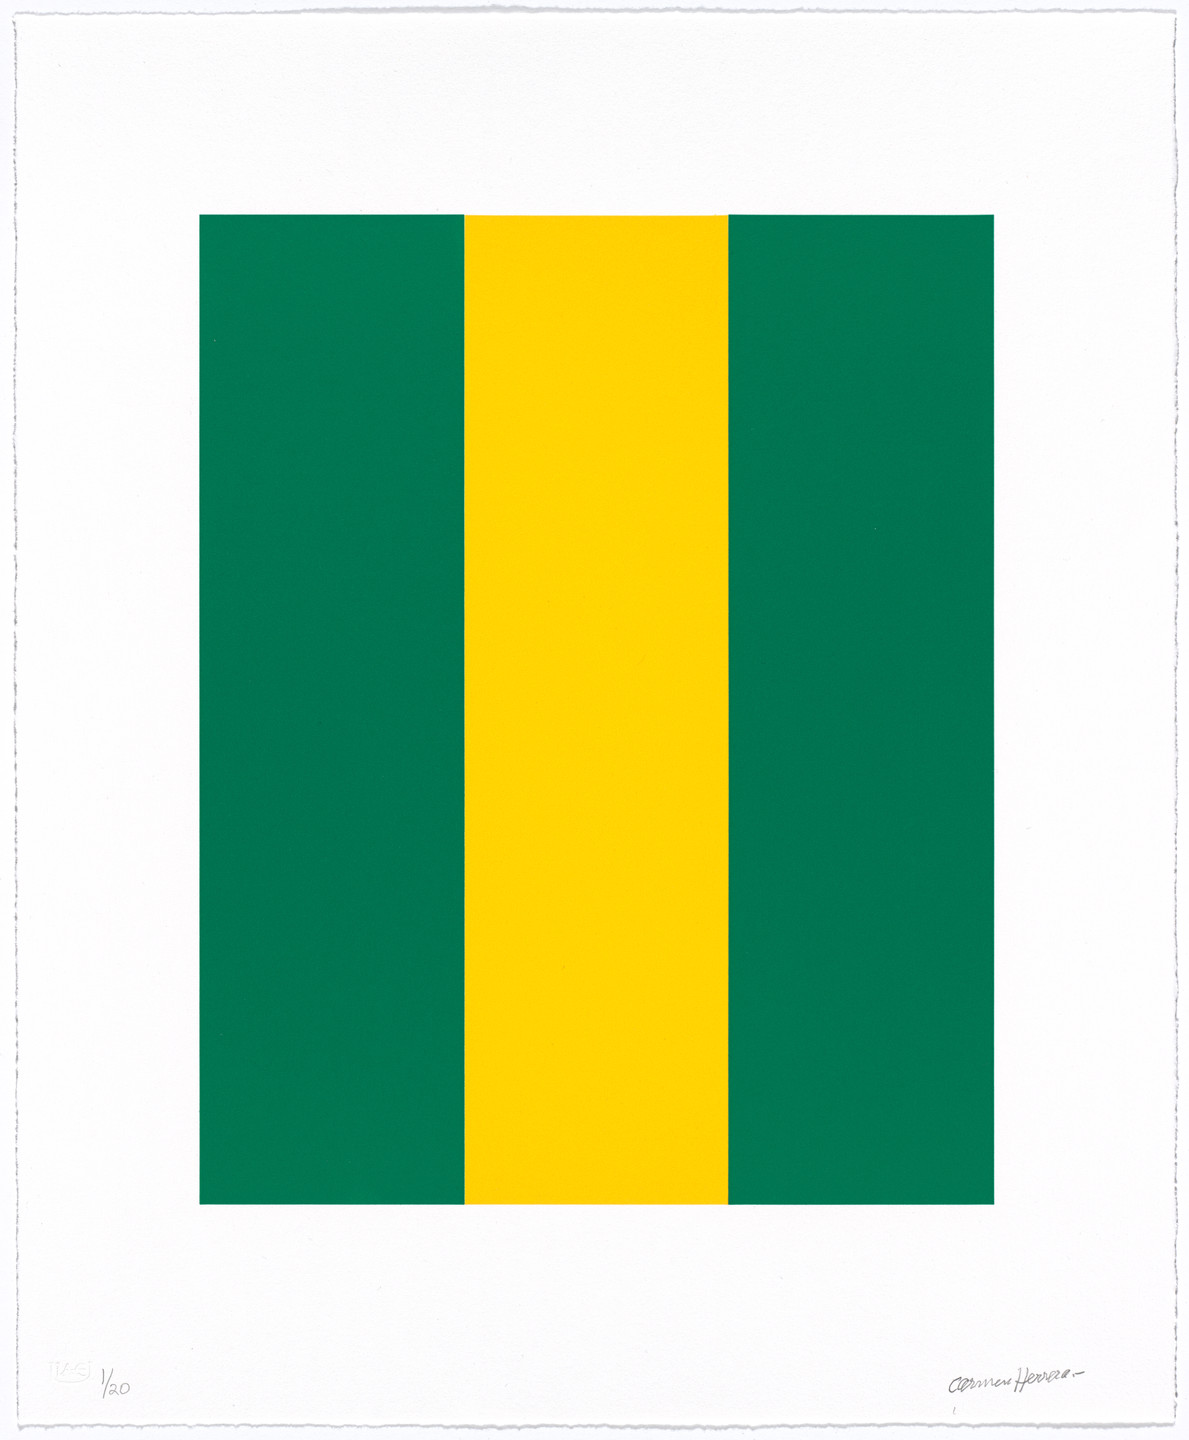 Carmen Herrera. Untitled from Verde y Amarillo. 2017